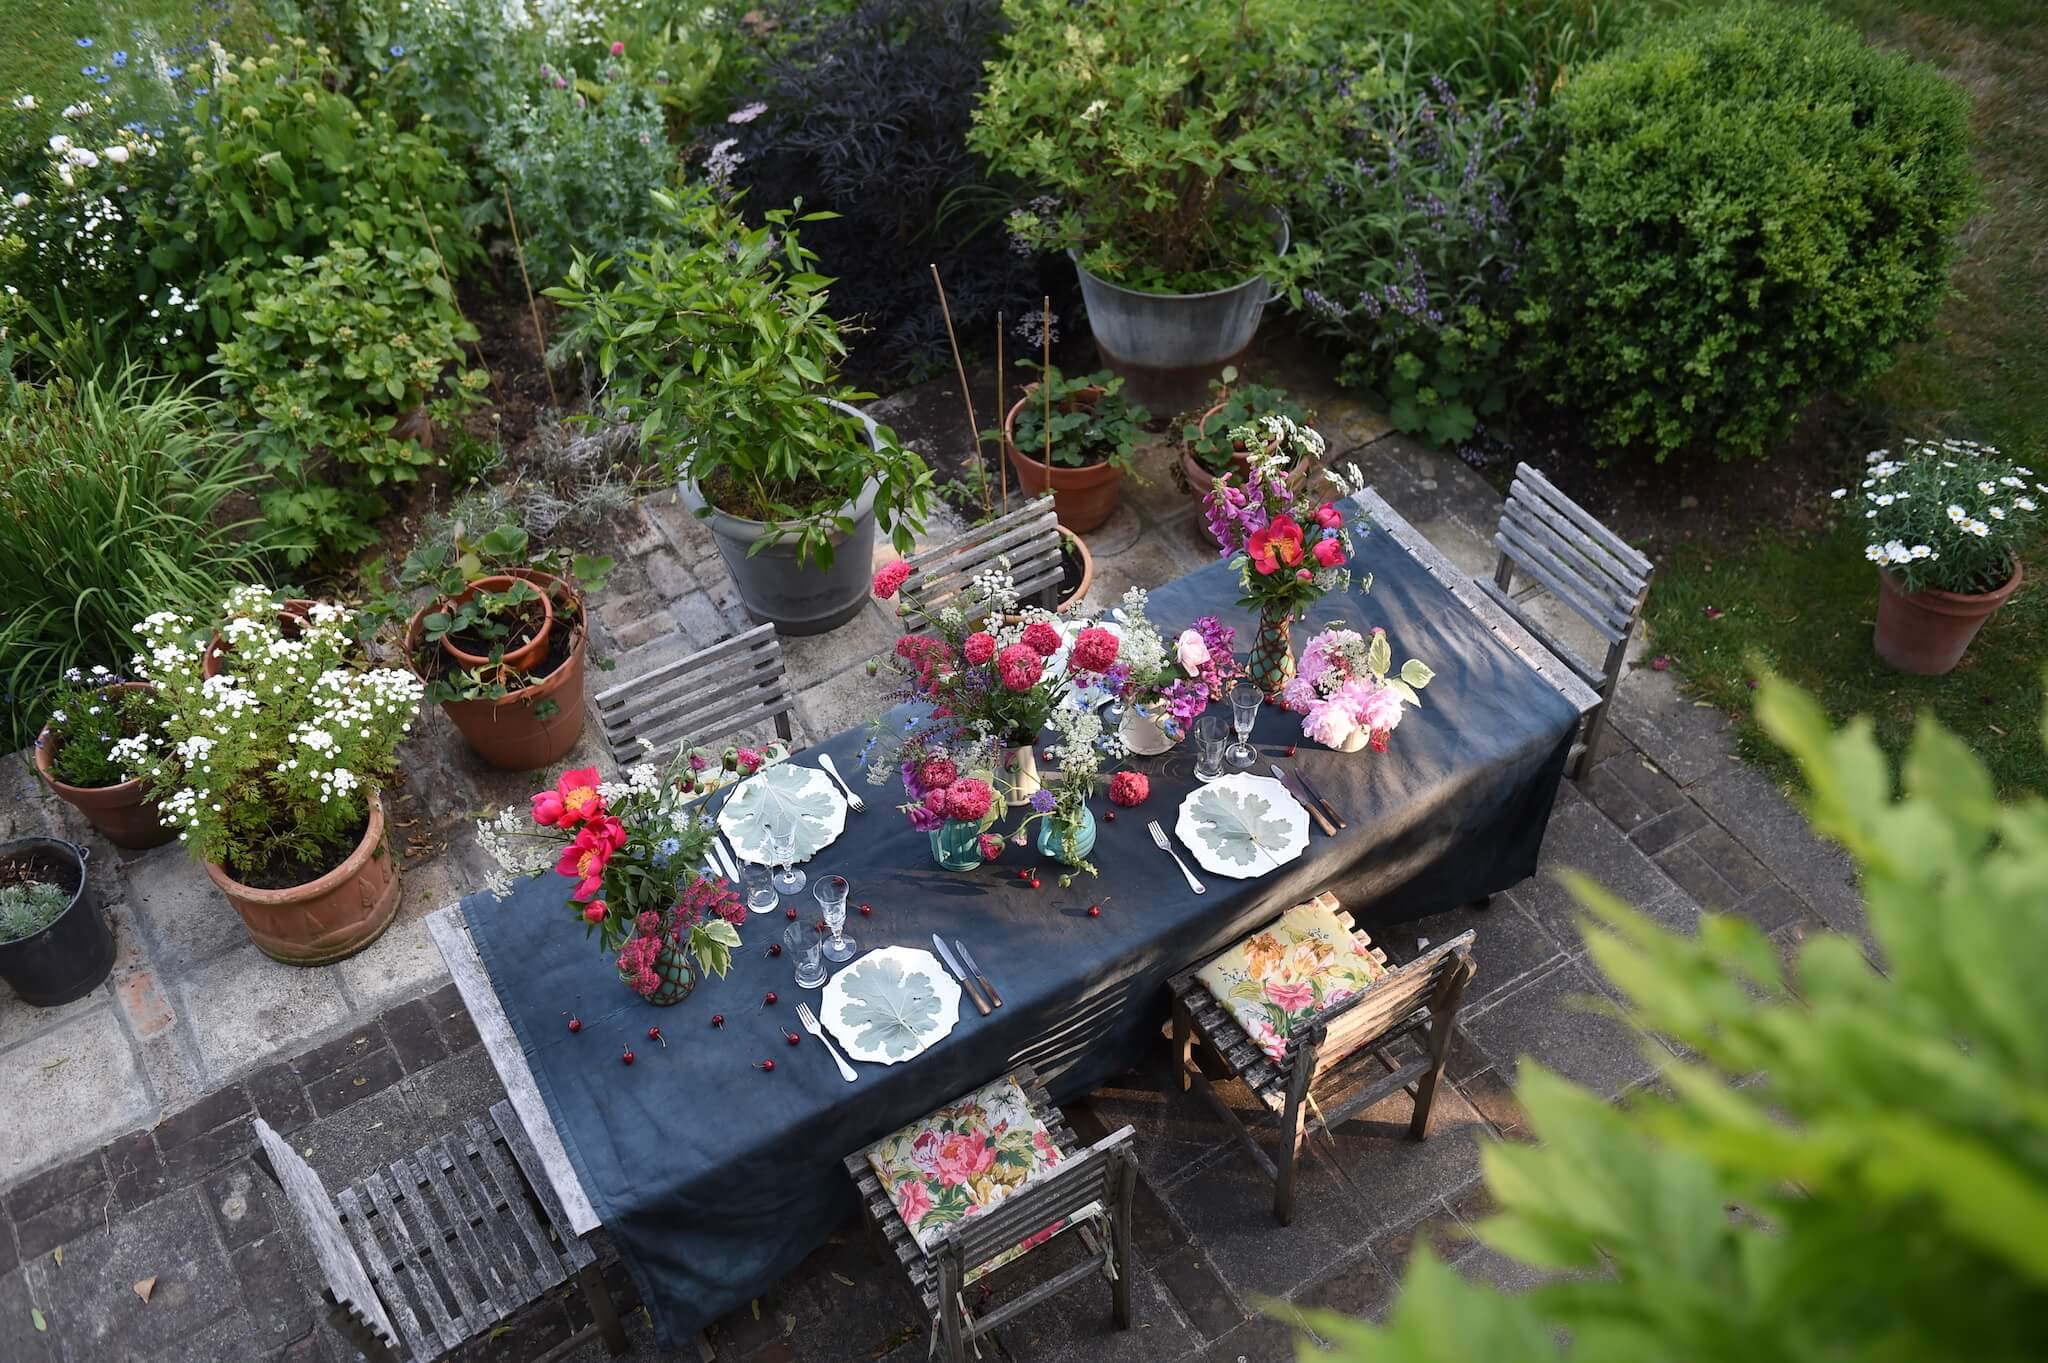 A table set for lunch in a Normandy garden.